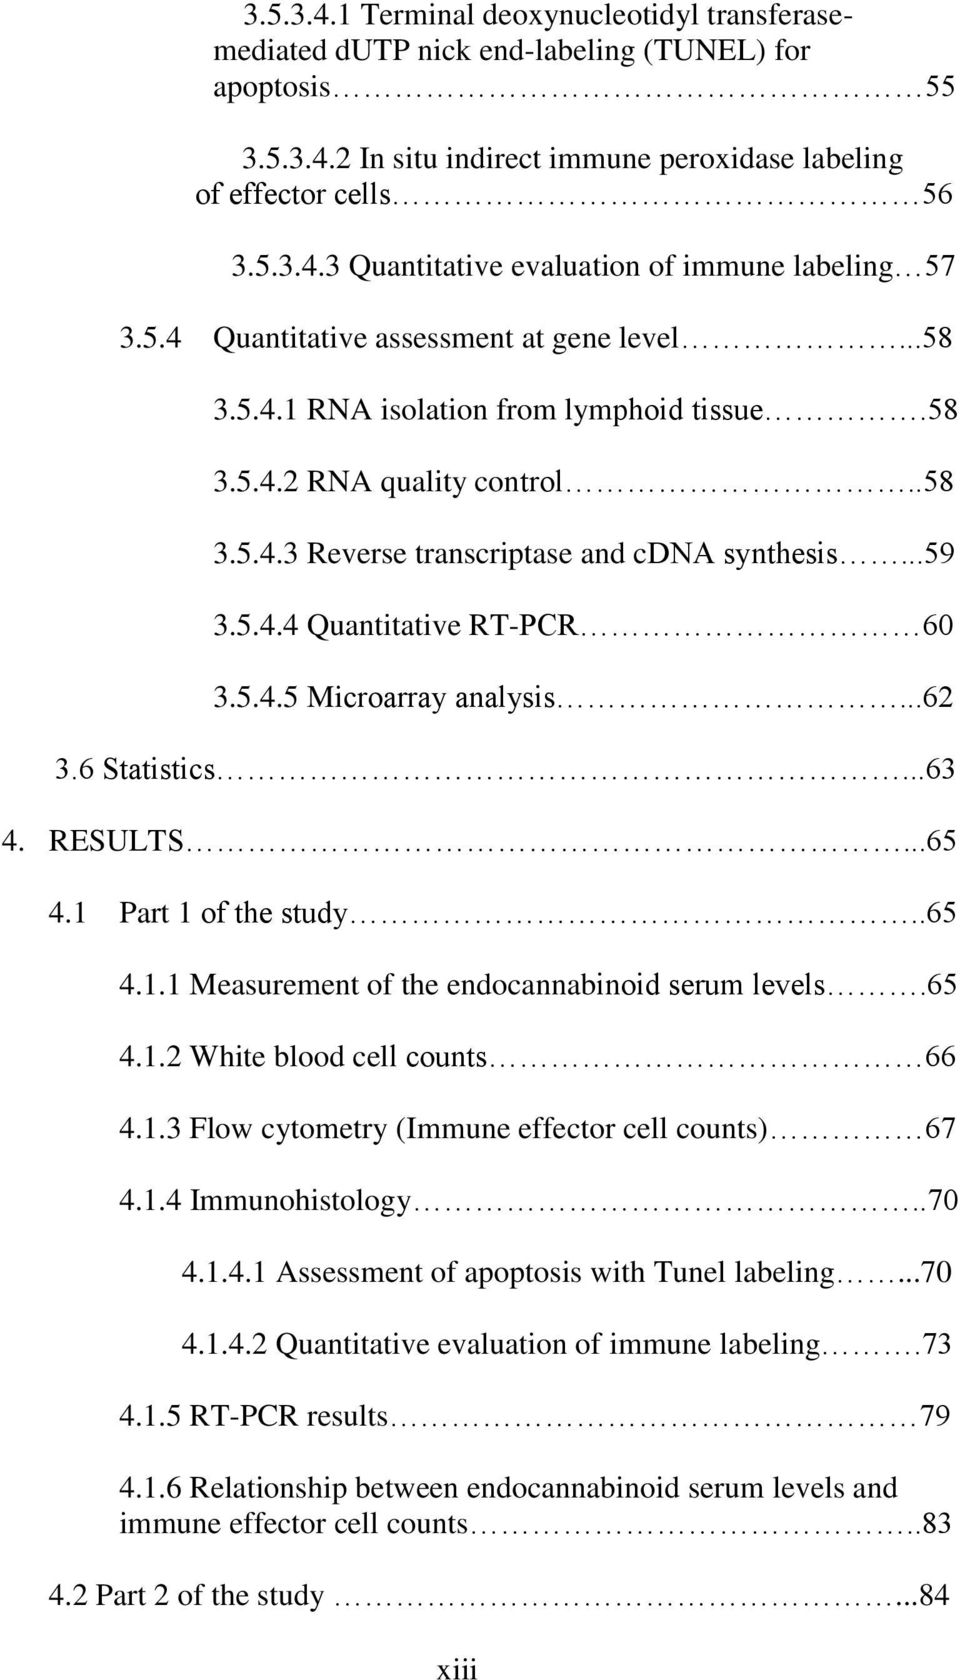 5.4.5 Microarray analysis...62 3.6 Statistics...63 4. RESULTS...65 4.1 Part 1 of the study..65 4.1.1 Measurement of the endocannabinoid serum levels.65 4.1.2 White blood cell counts 66 4.1.3 Flow cytometry (Immune effector cell counts) 67 4.